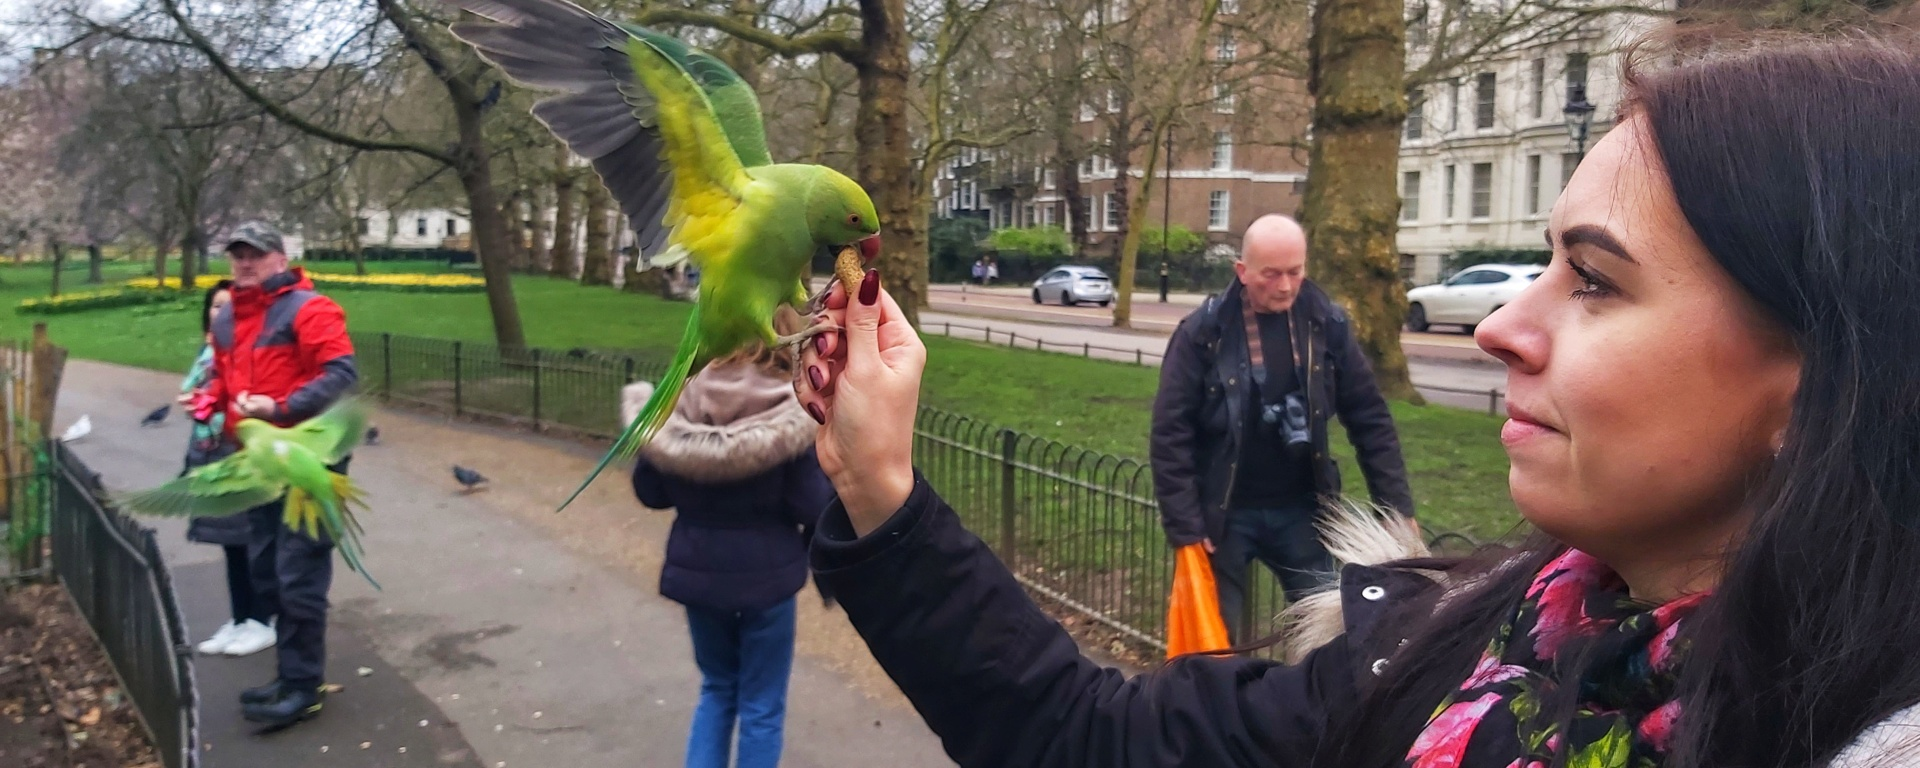 Holding a green parrot in St James's Park, London